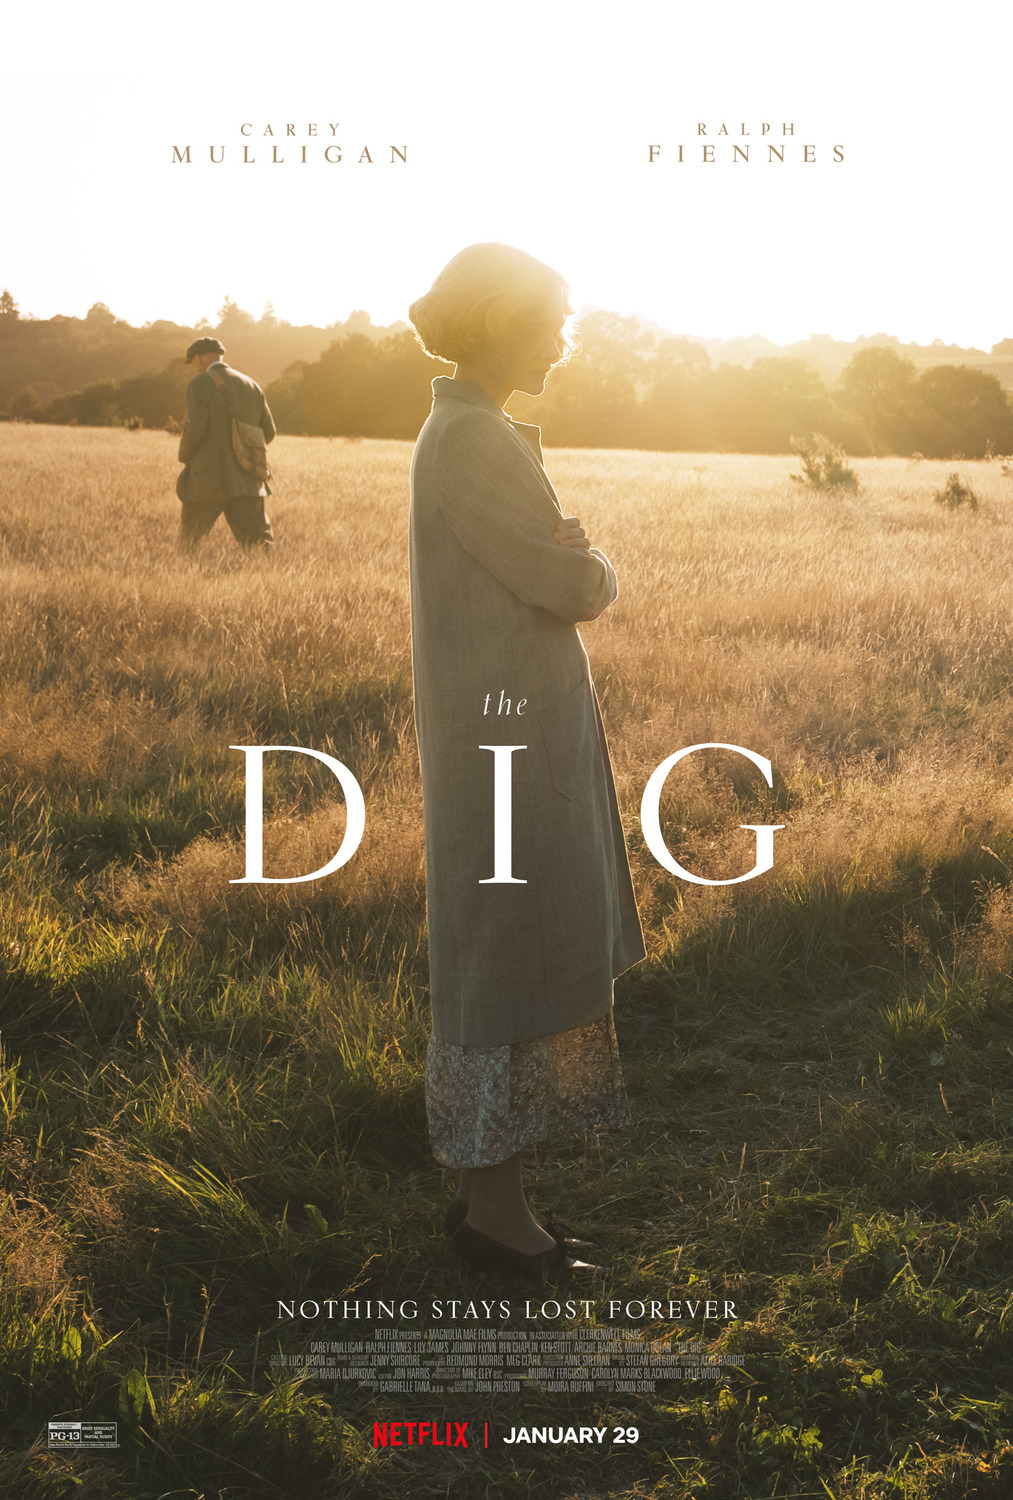 Image result for The Dig movie poster 2021